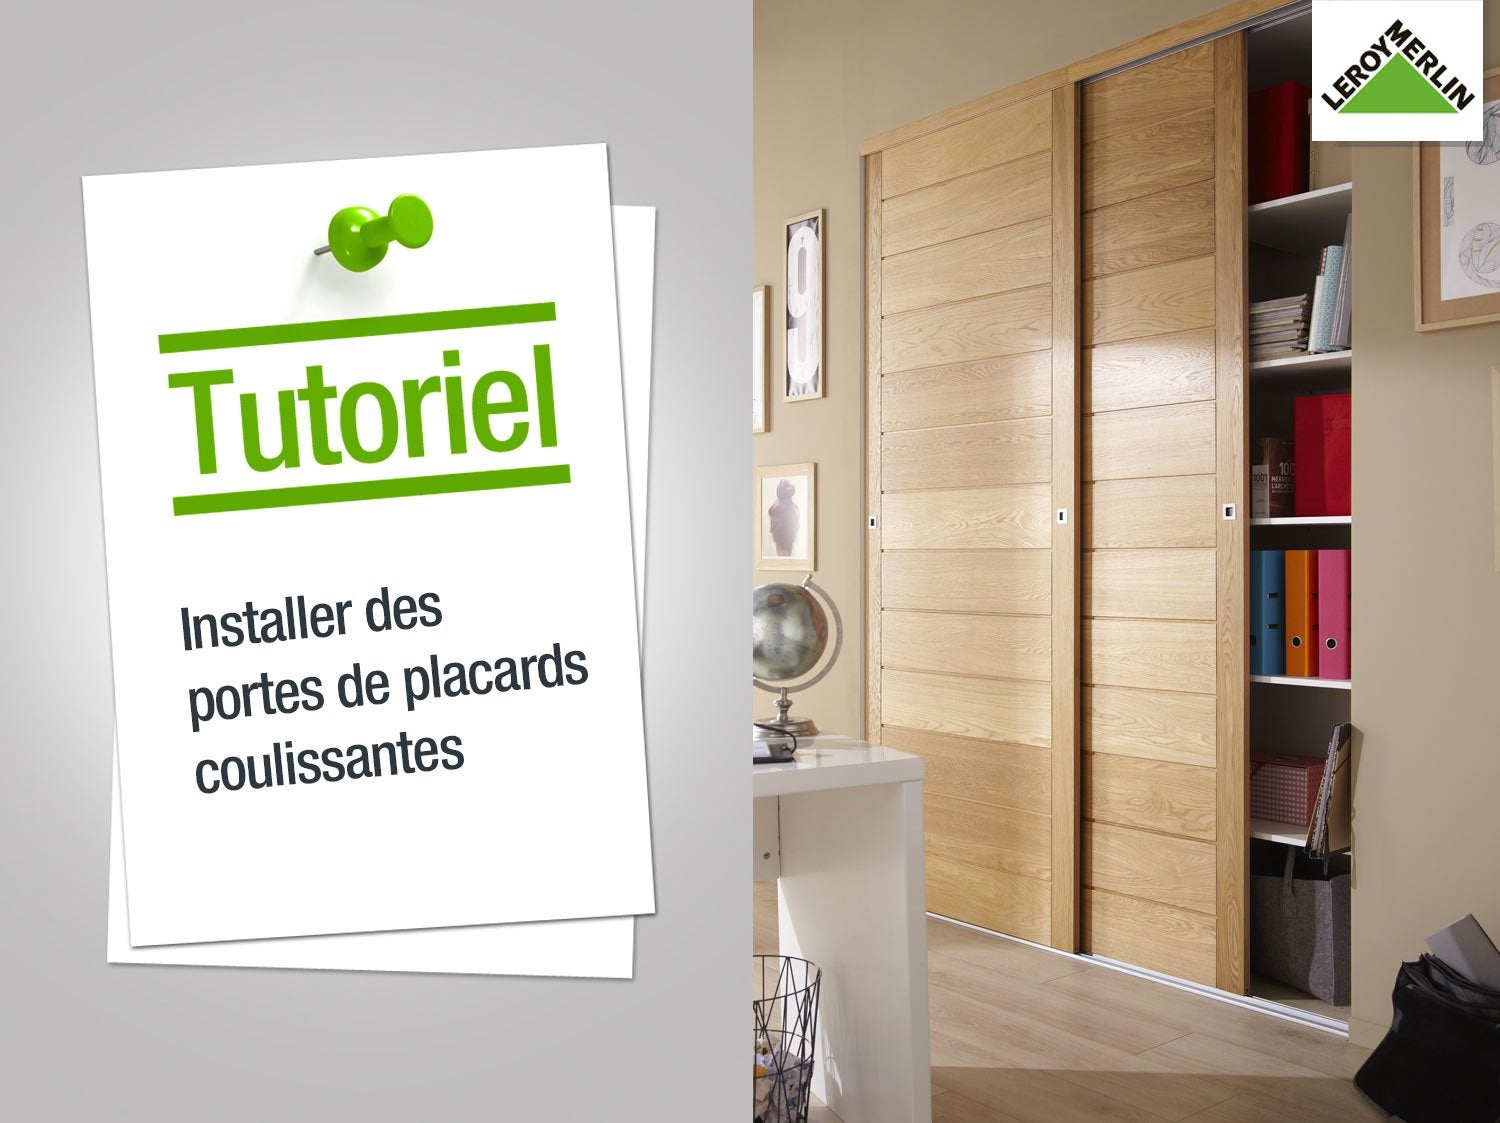 Comment installer des portes de placards coulissantes leroy merlin - Installer portes placard coulissantes ...